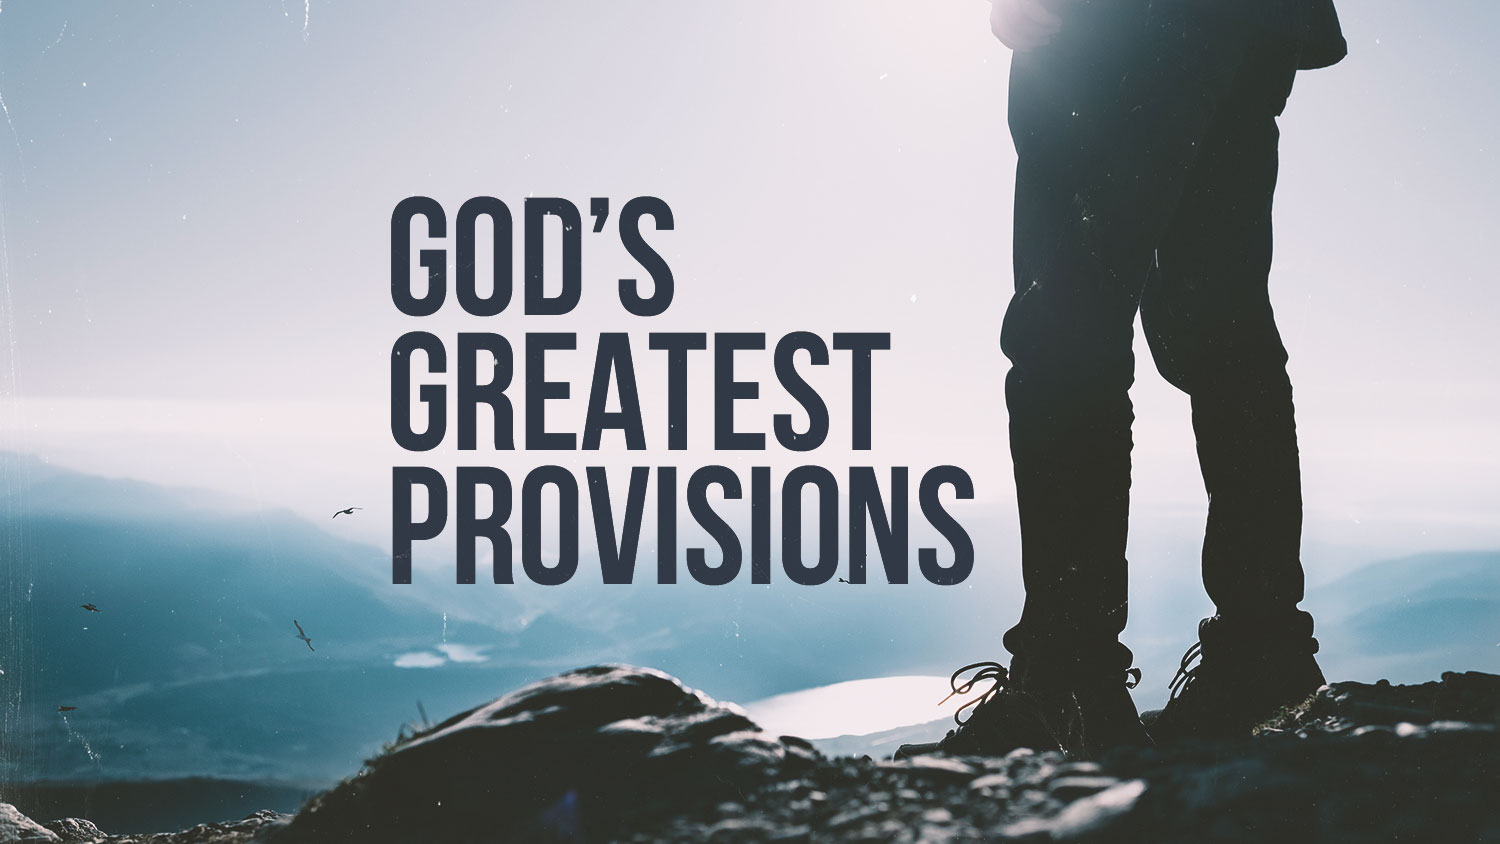 God's Greatest Provisions Image